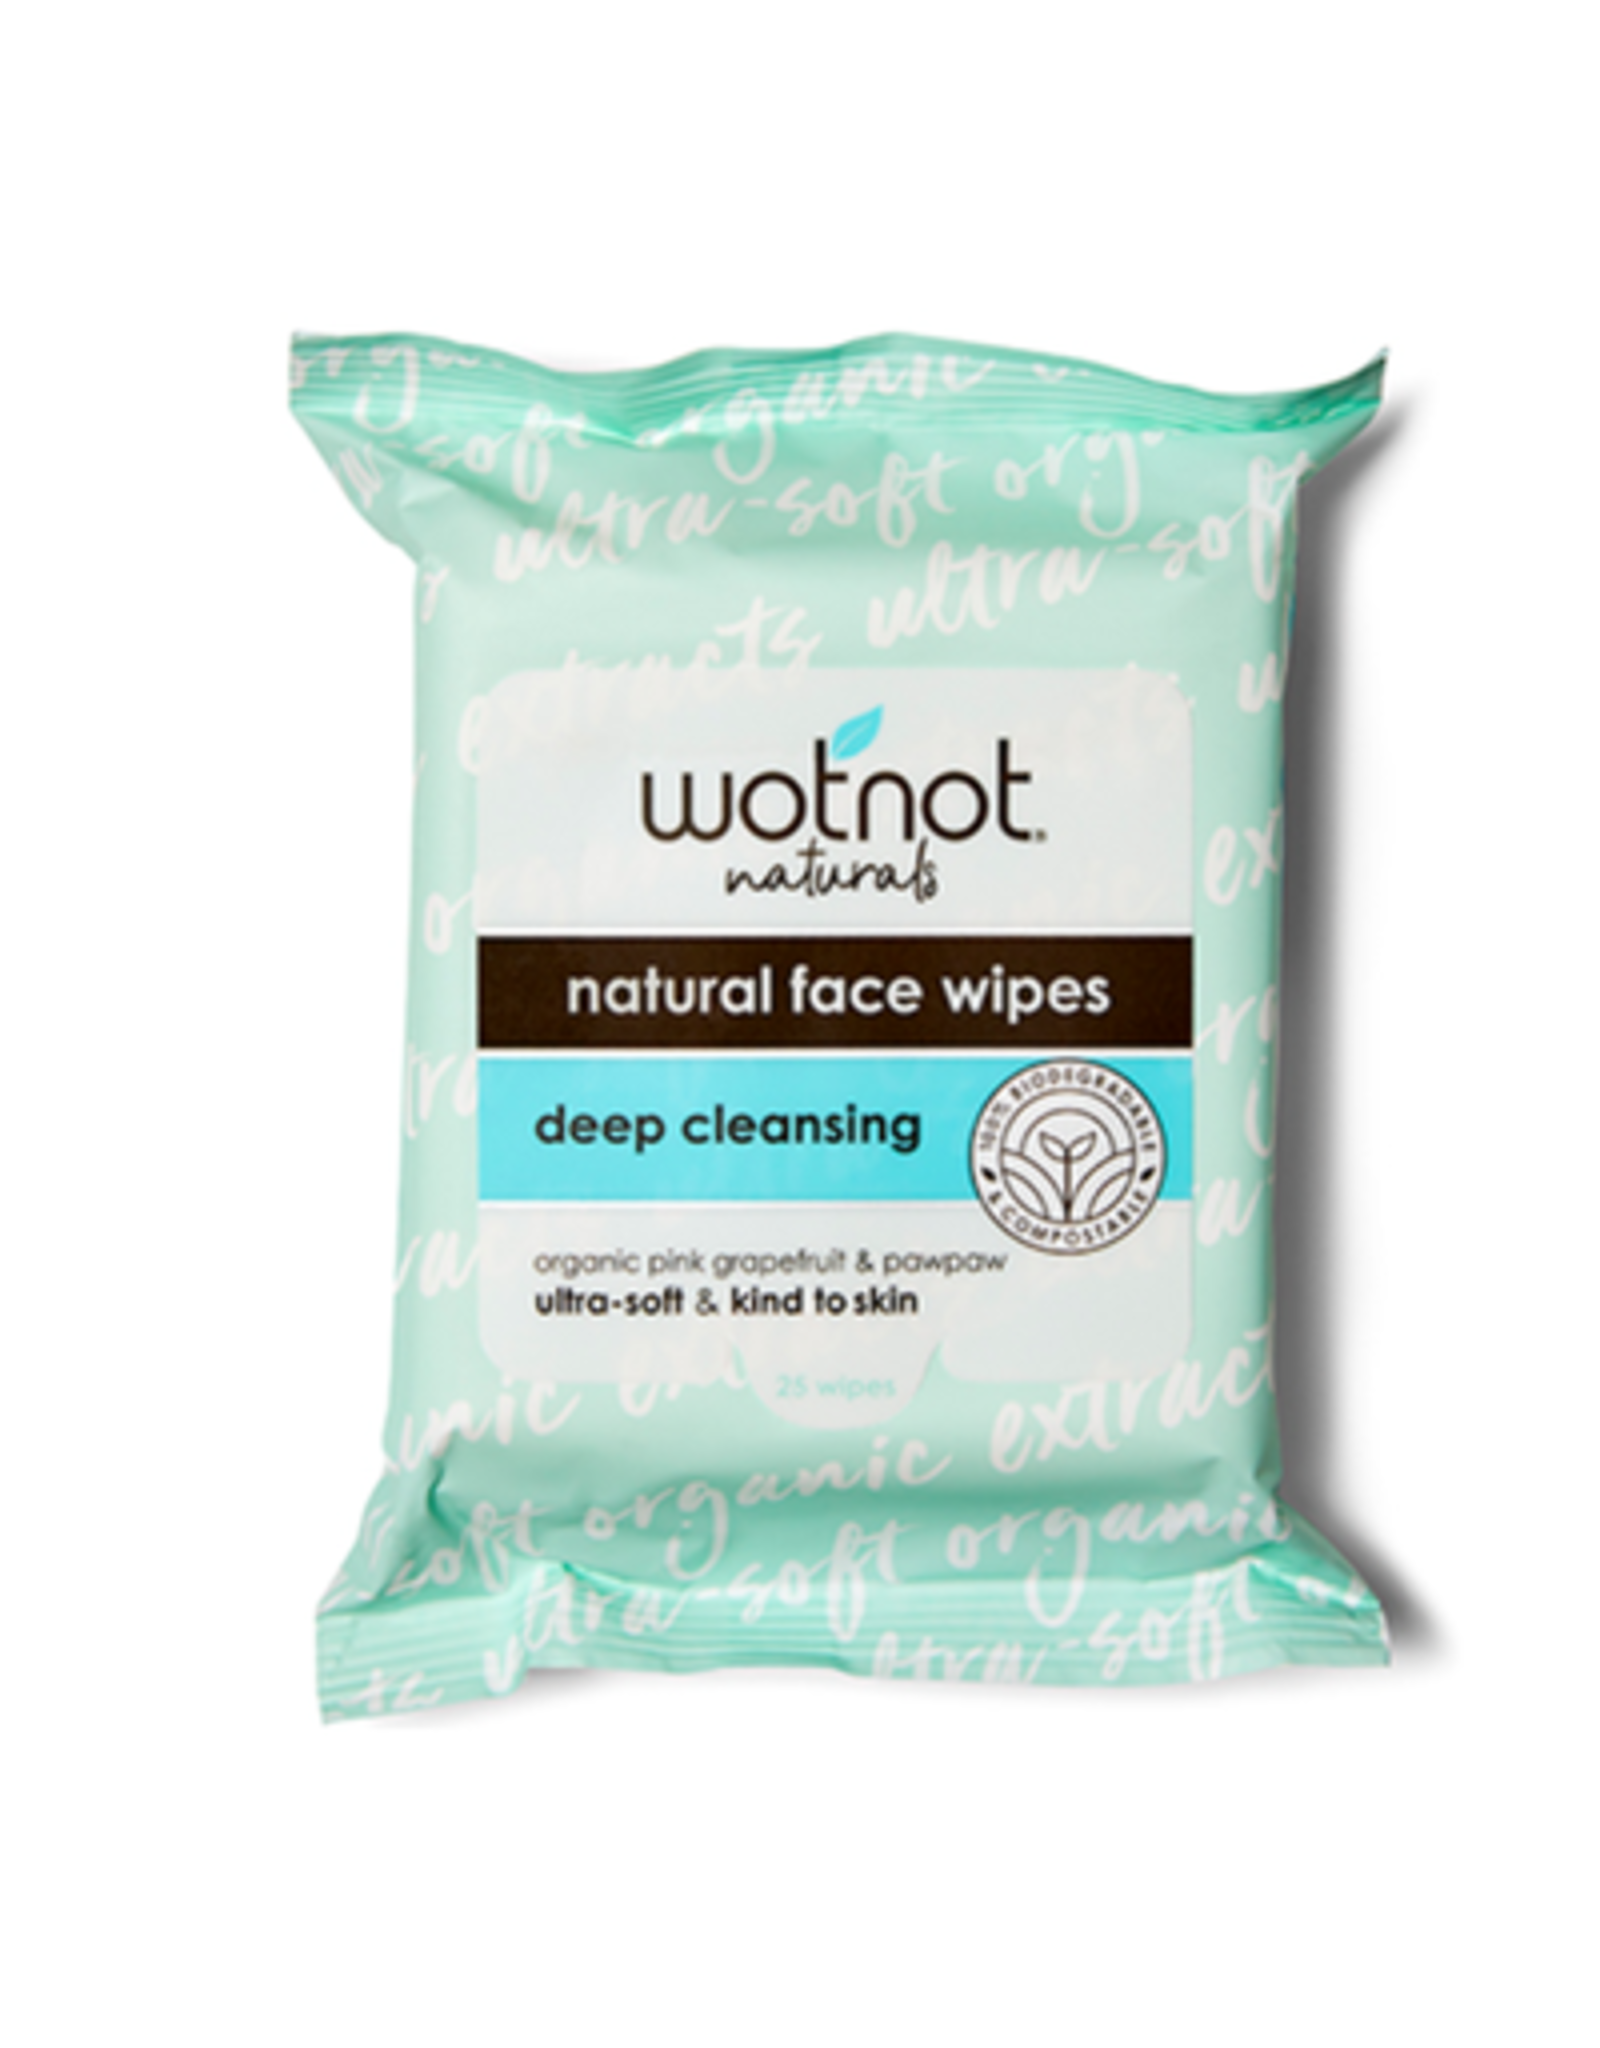 Wotnot Deep Cleansing Facial Wipes 25s